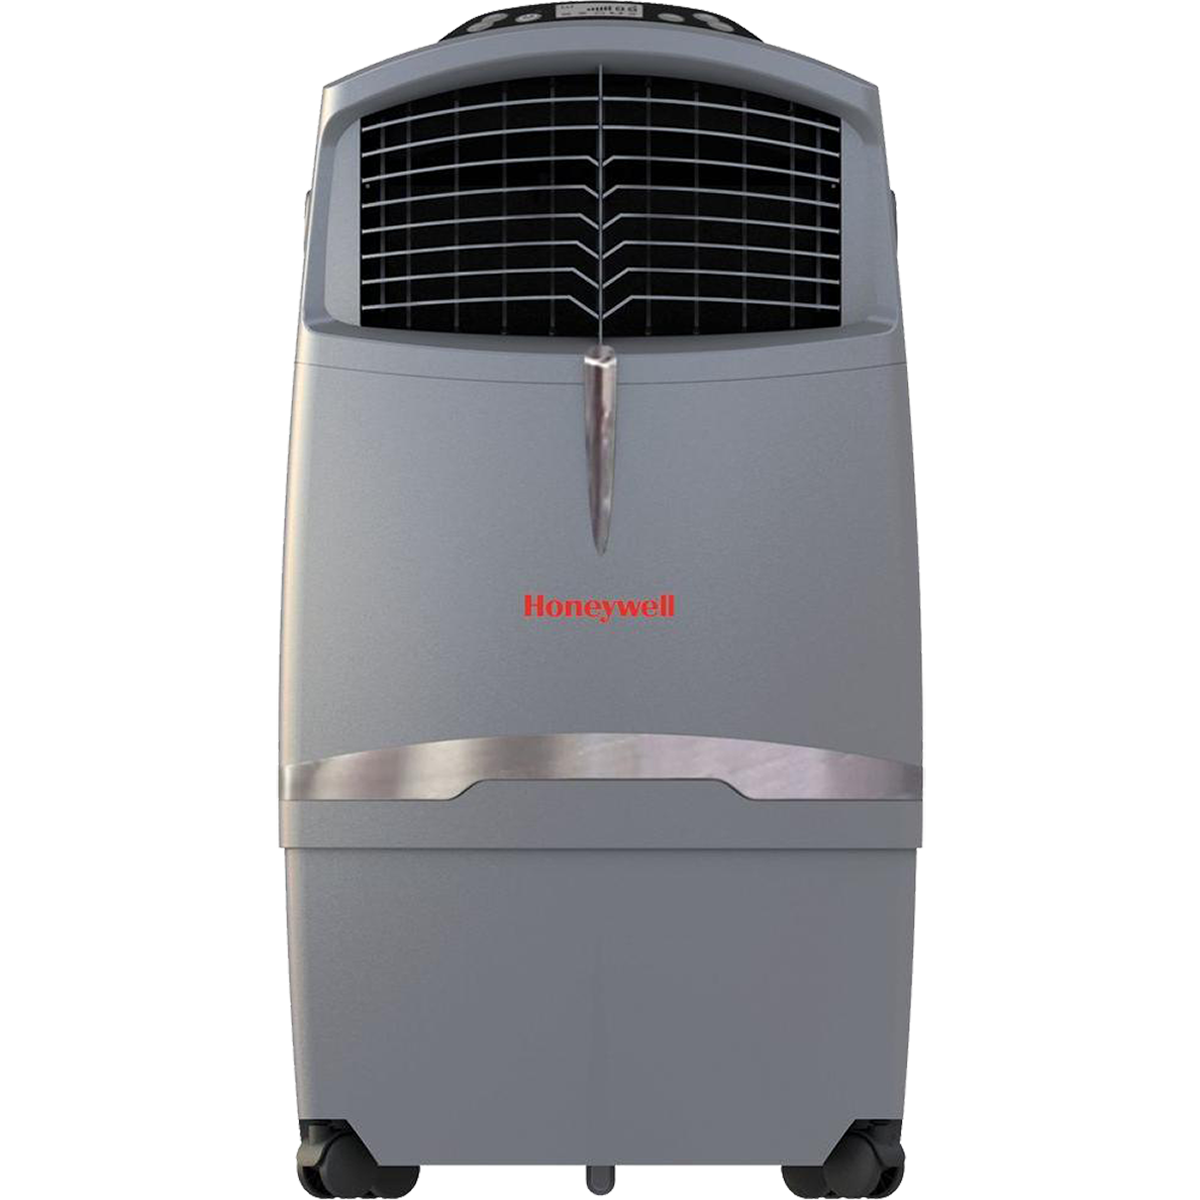 Honeywell CO30XE Indoor-Outdoor Evaporative Air Cooler ho6318